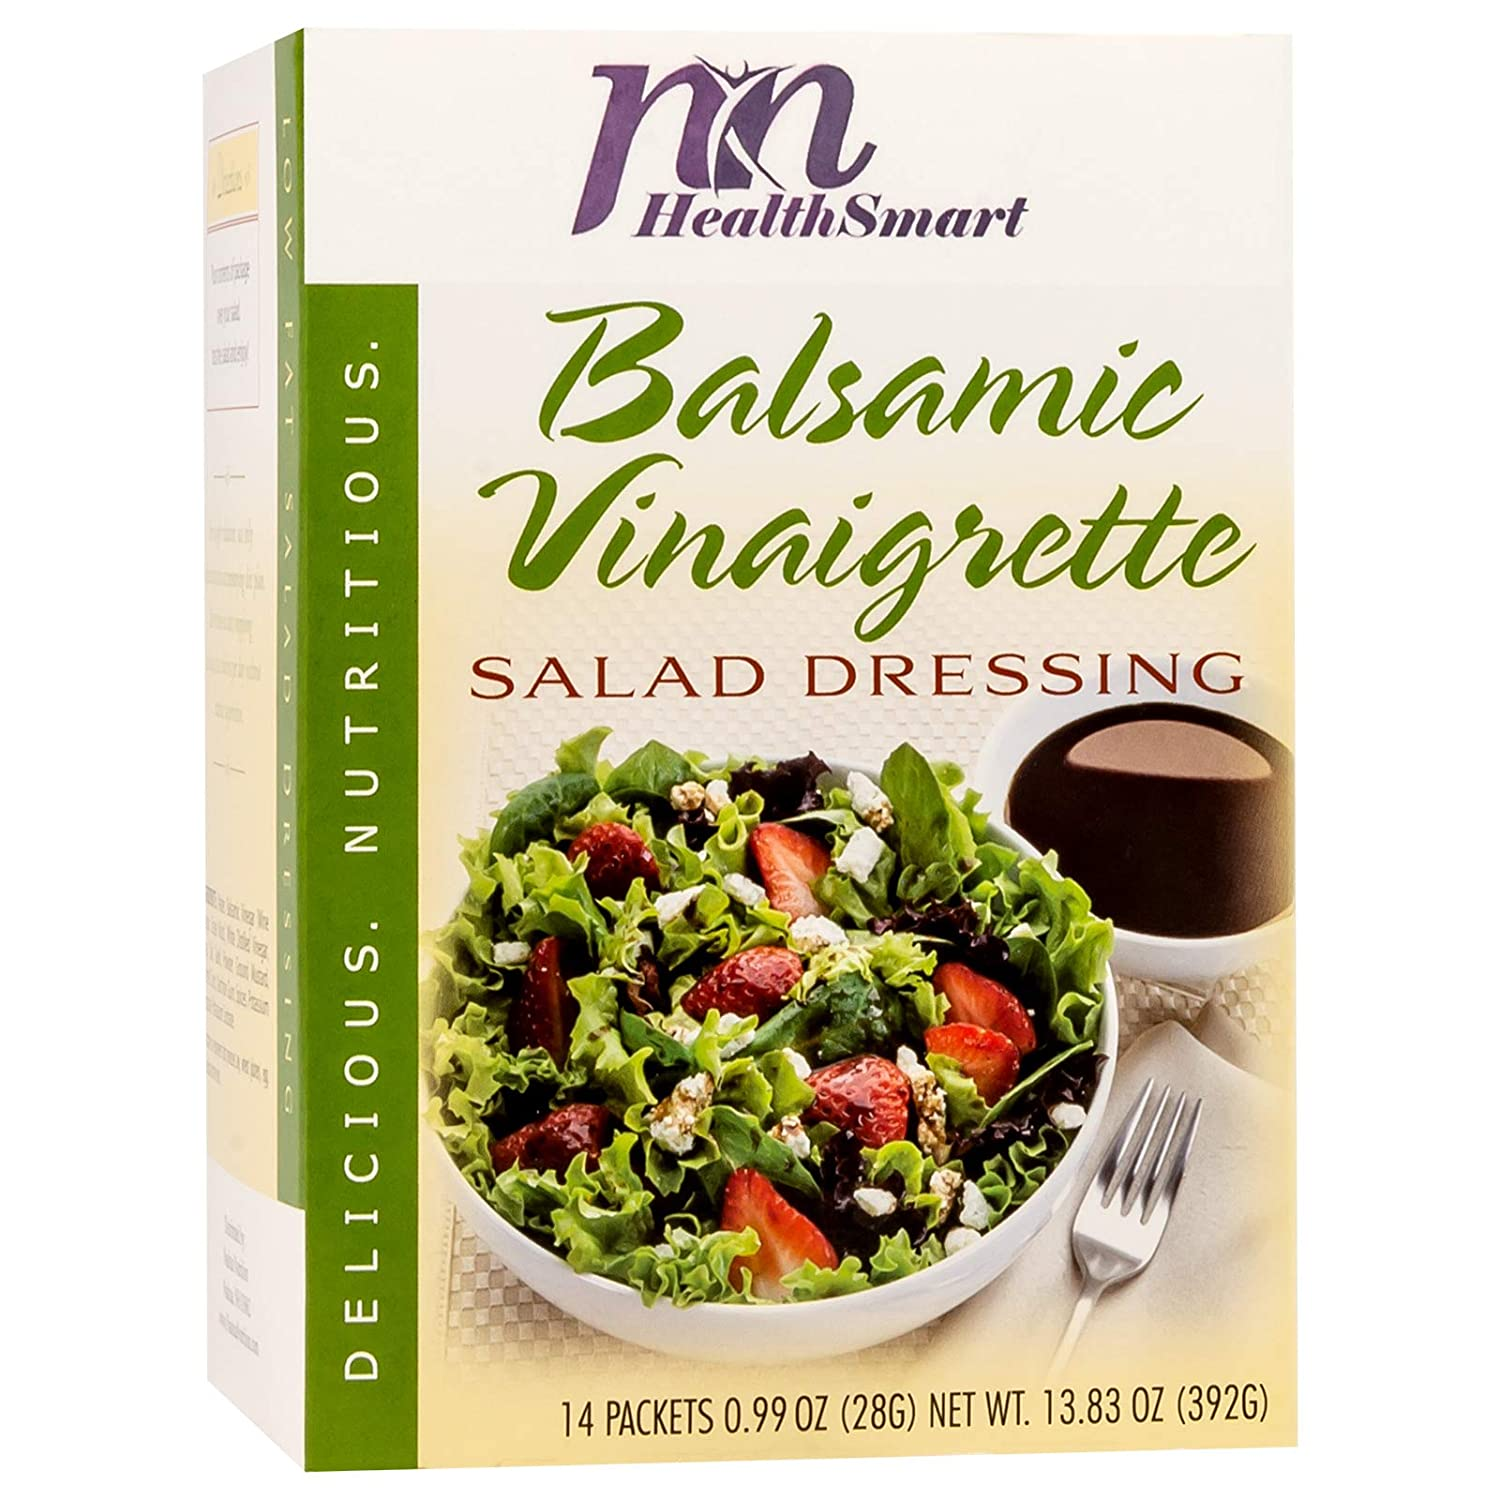 salad dressing for low cholesterol diet